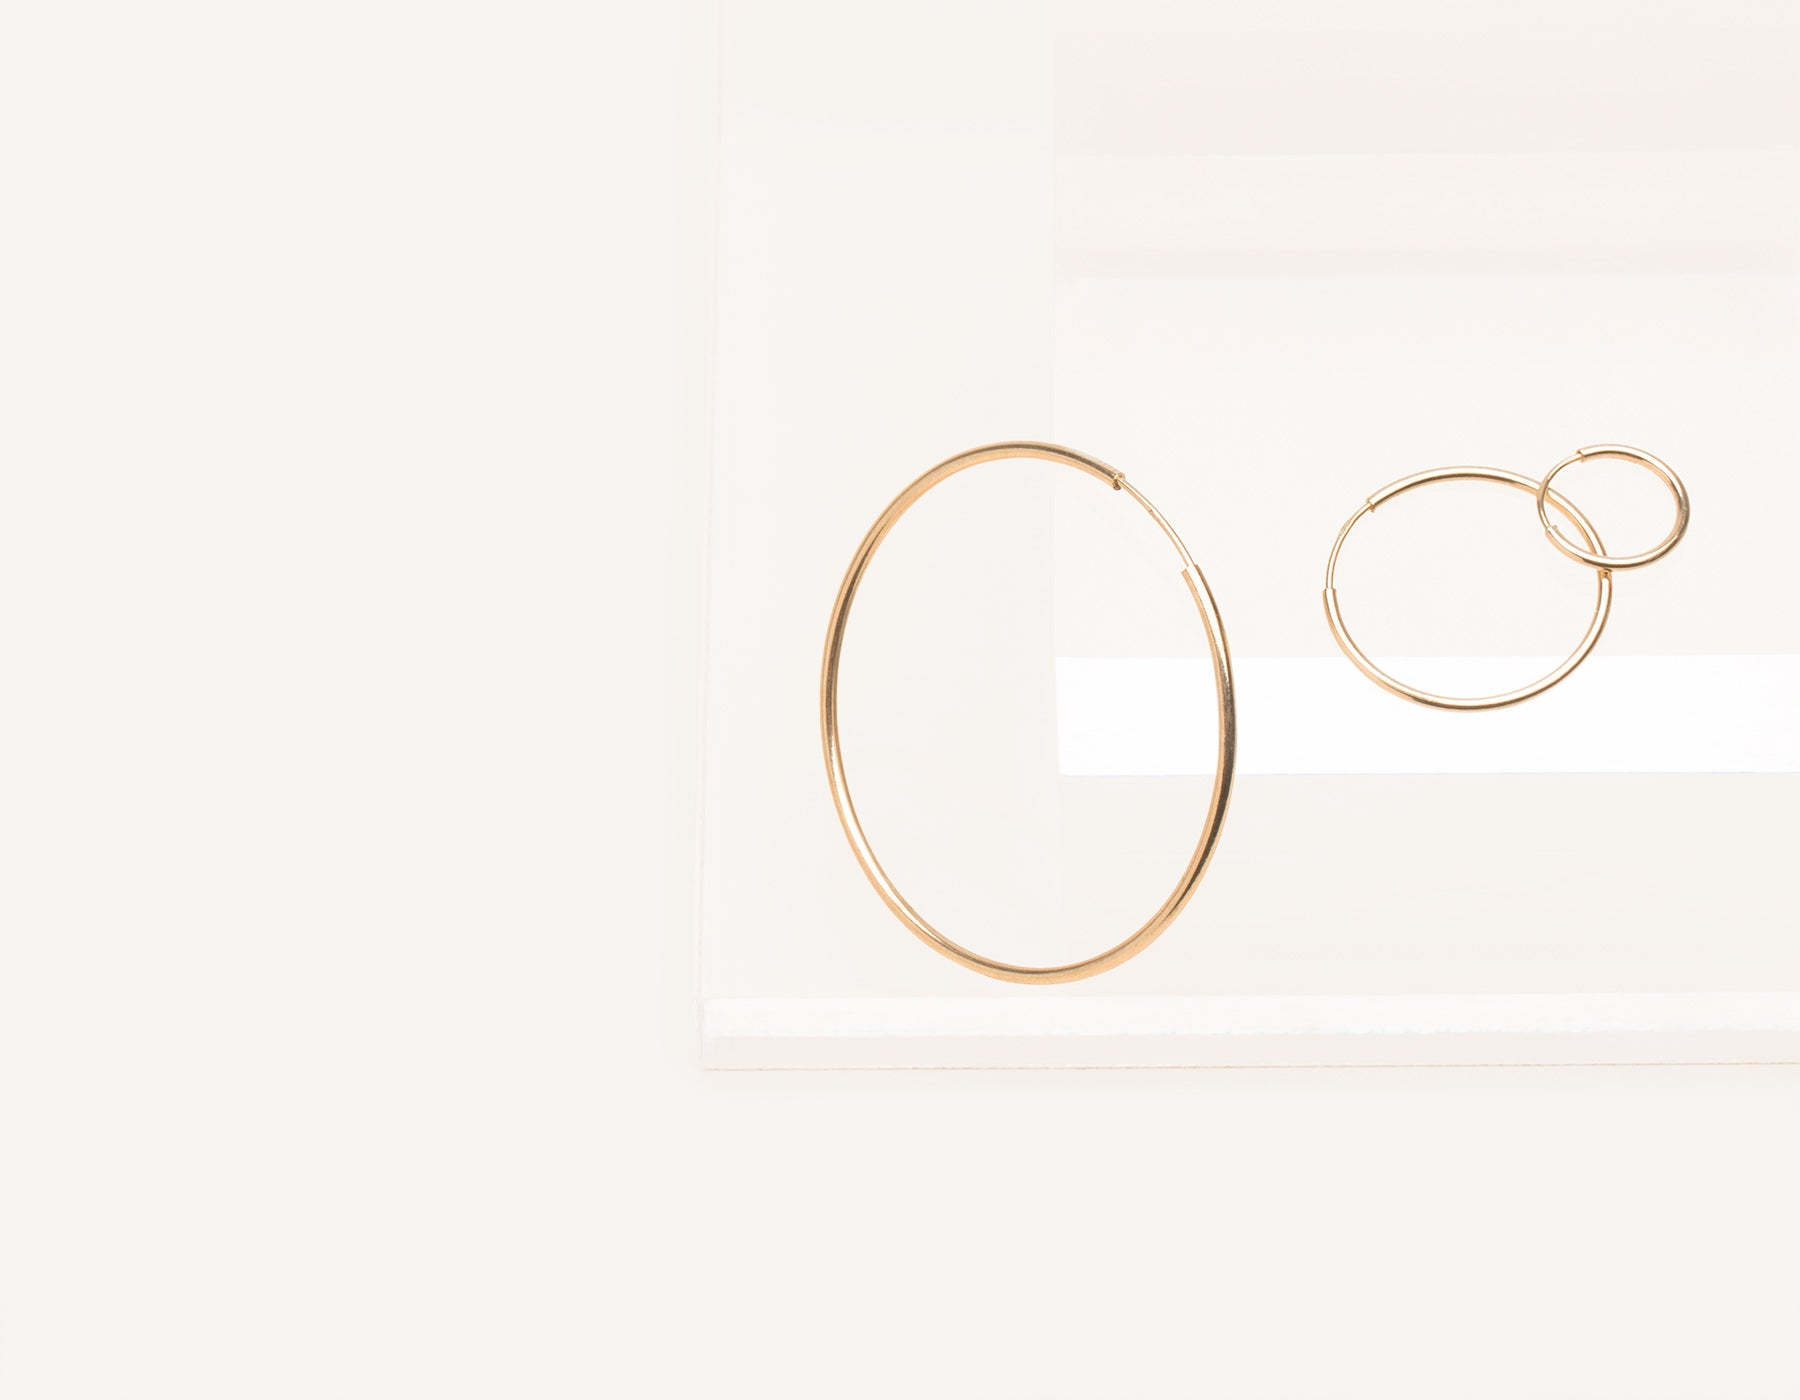 Simple classic thin Lightweight Hoops 14k solid gold Vrai and Oro minimalist jewelry, 14K Rose Gold